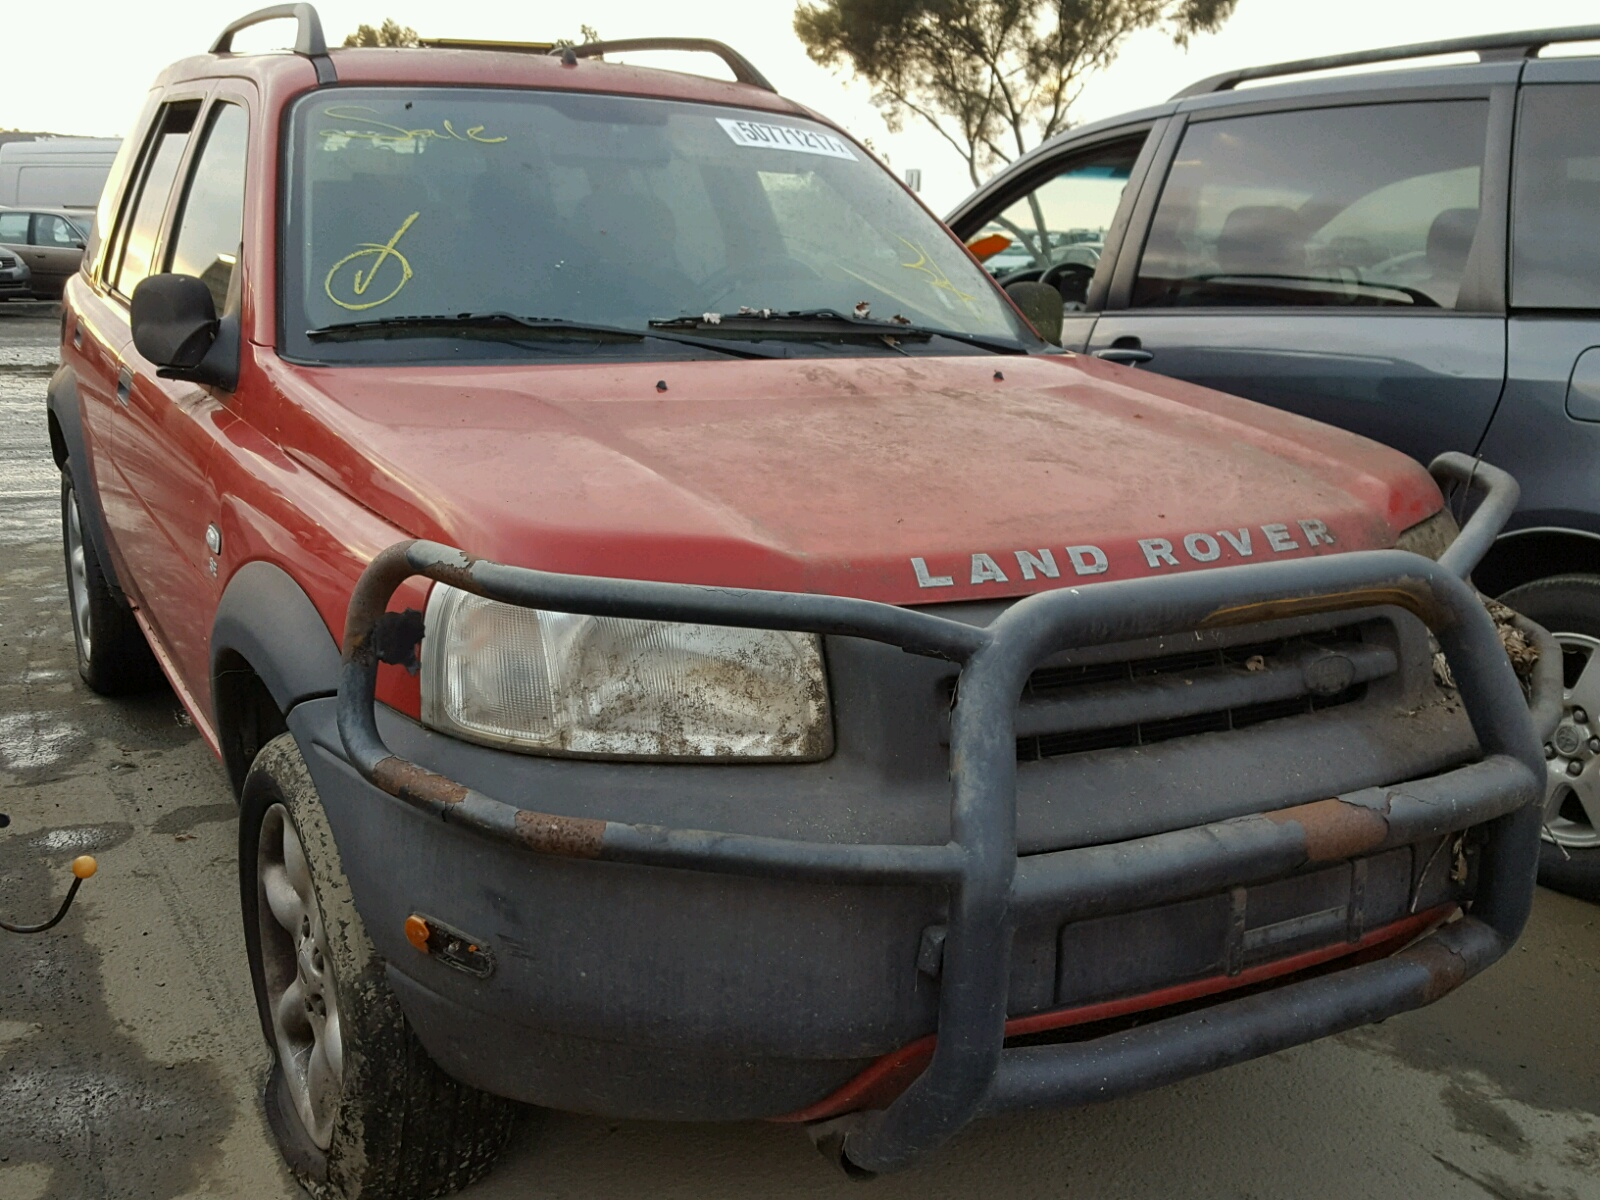 beach auto carfinder hse certificate auction ended lot on en landrover vin destruction fl west rover auctions for discovery sale online land of copart palm